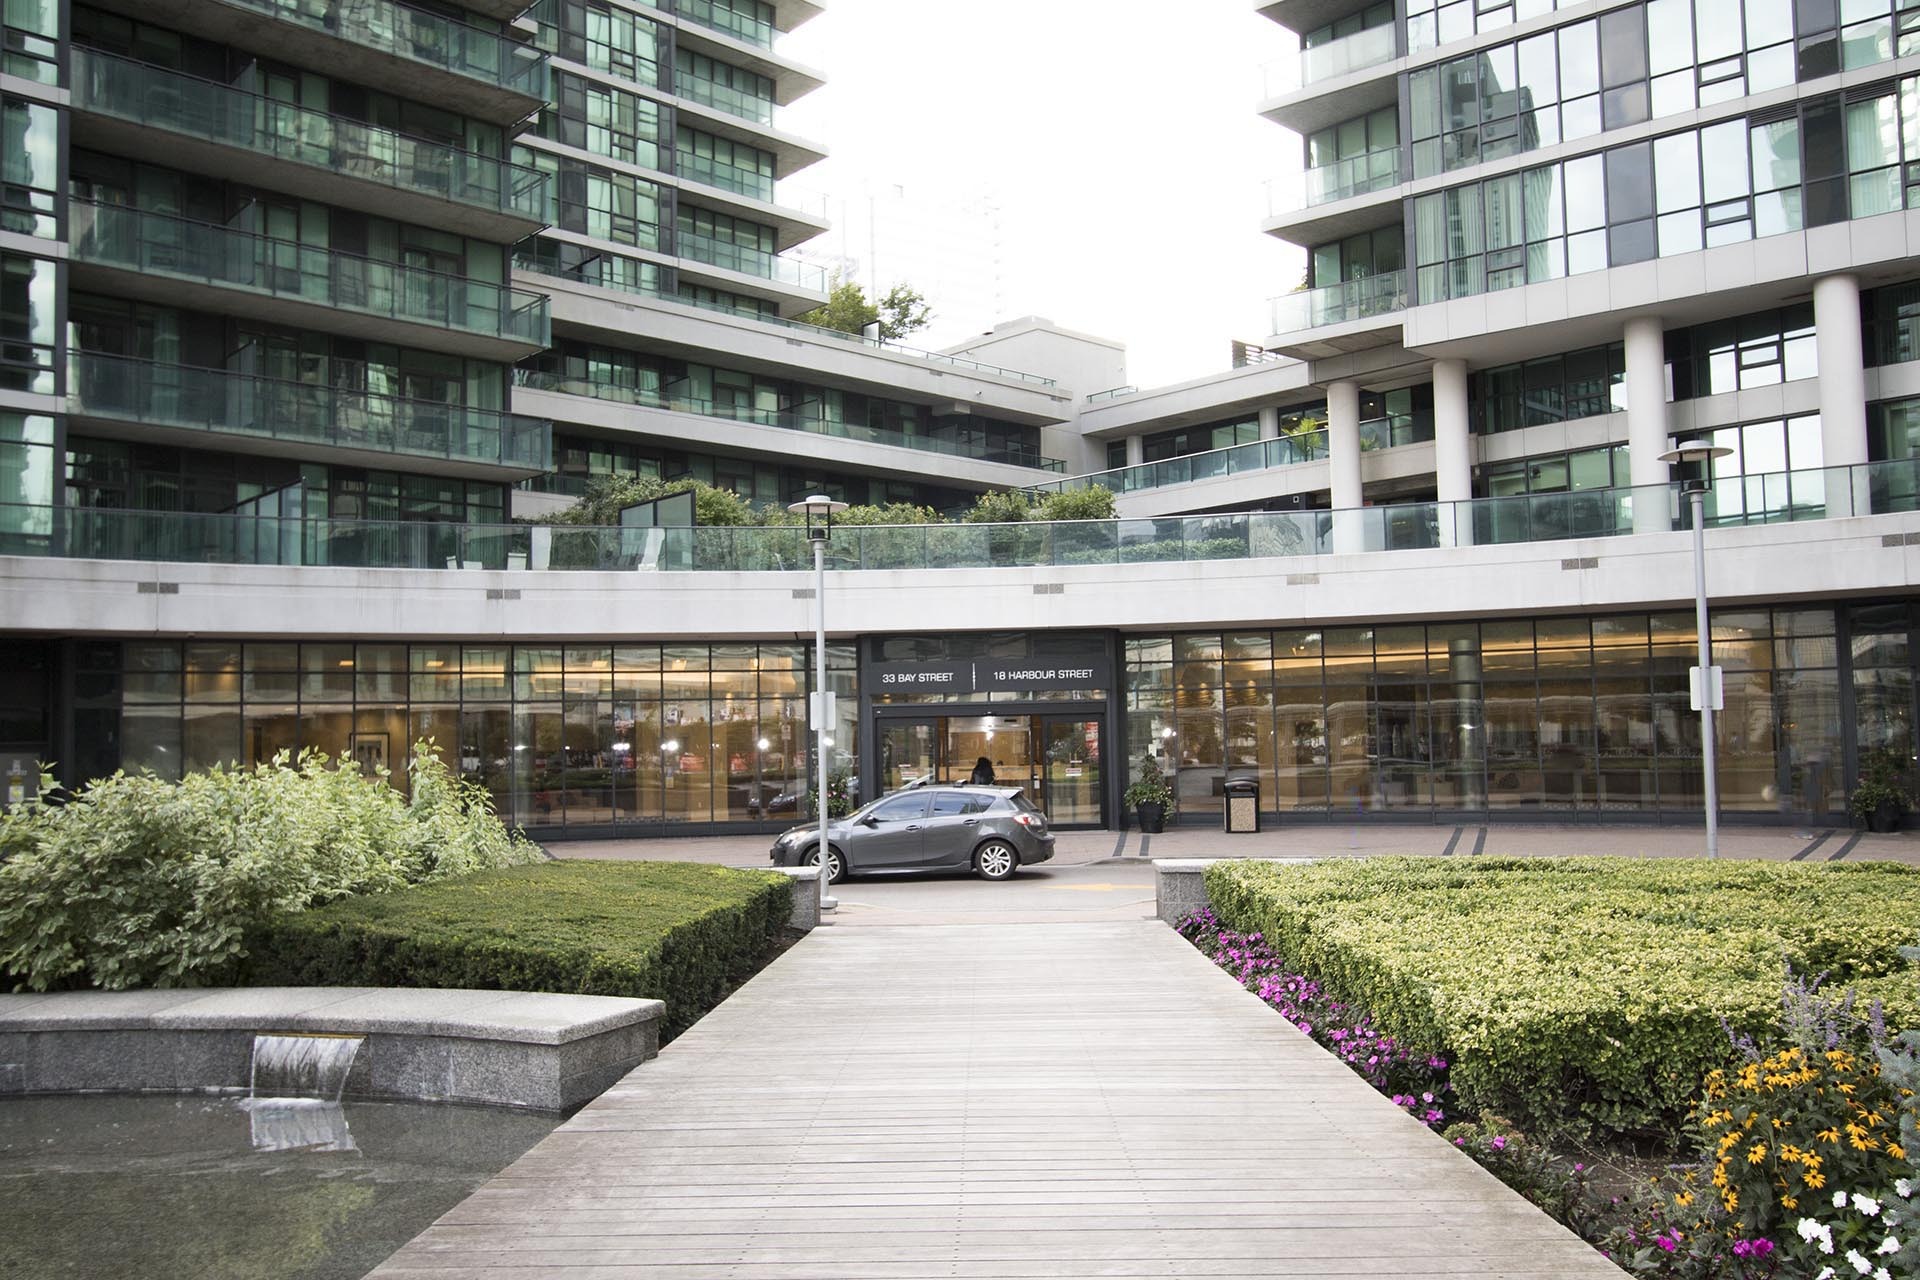 #2103-18 Harbour St., Toronto - For Lease $2450/month